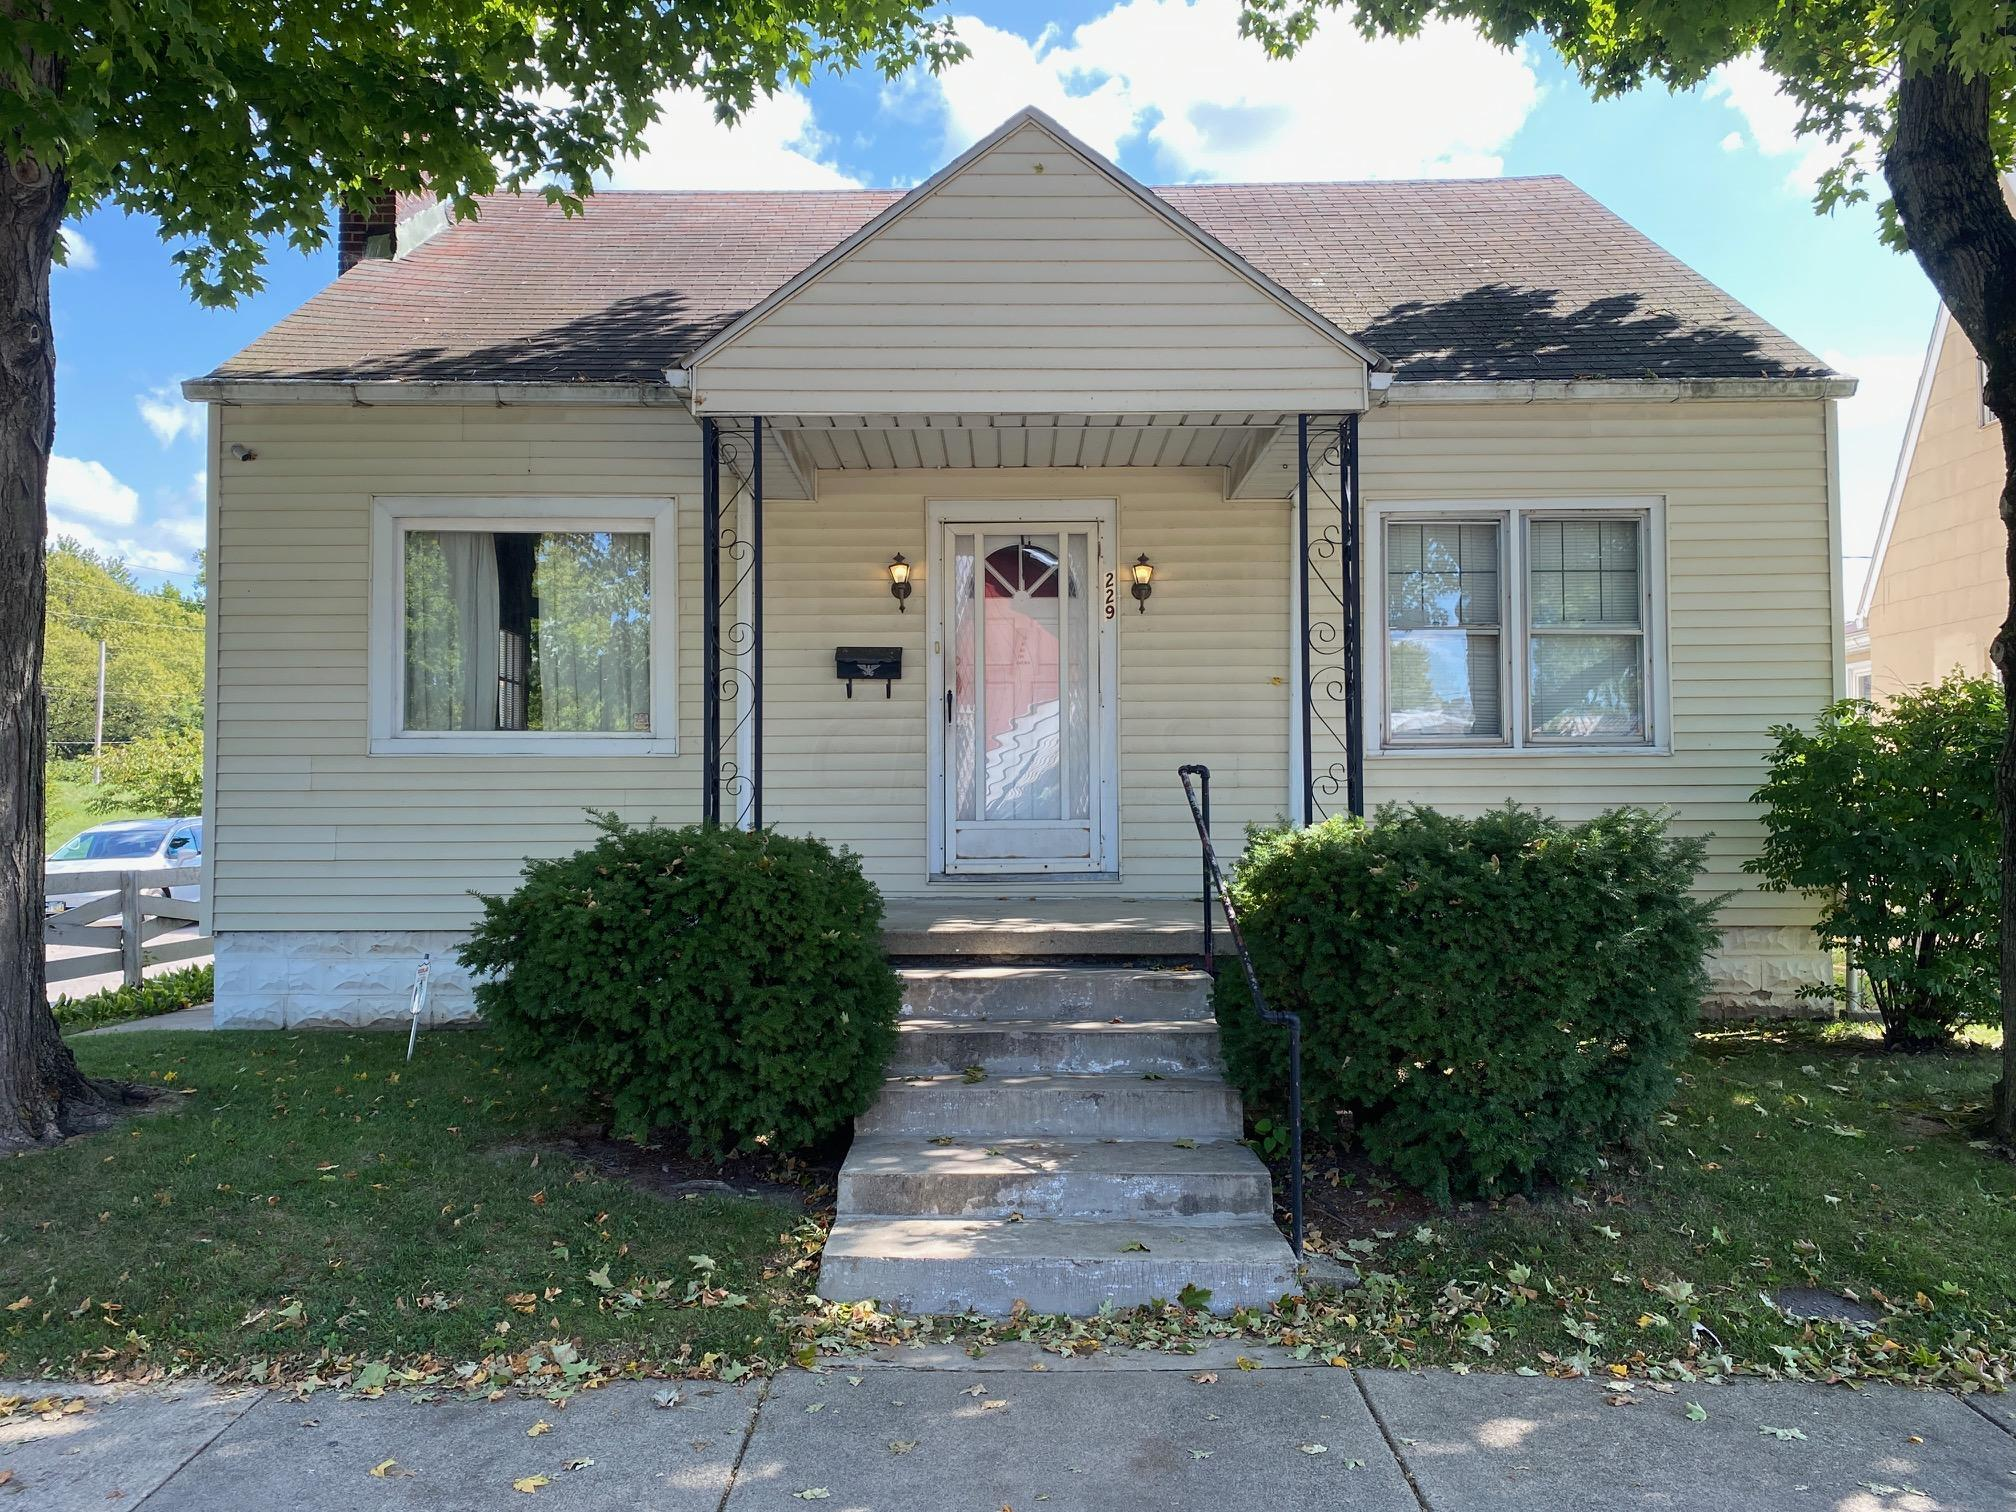 Property for sale at 229 N Sugar Street, Chillicothe,  Ohio 45601